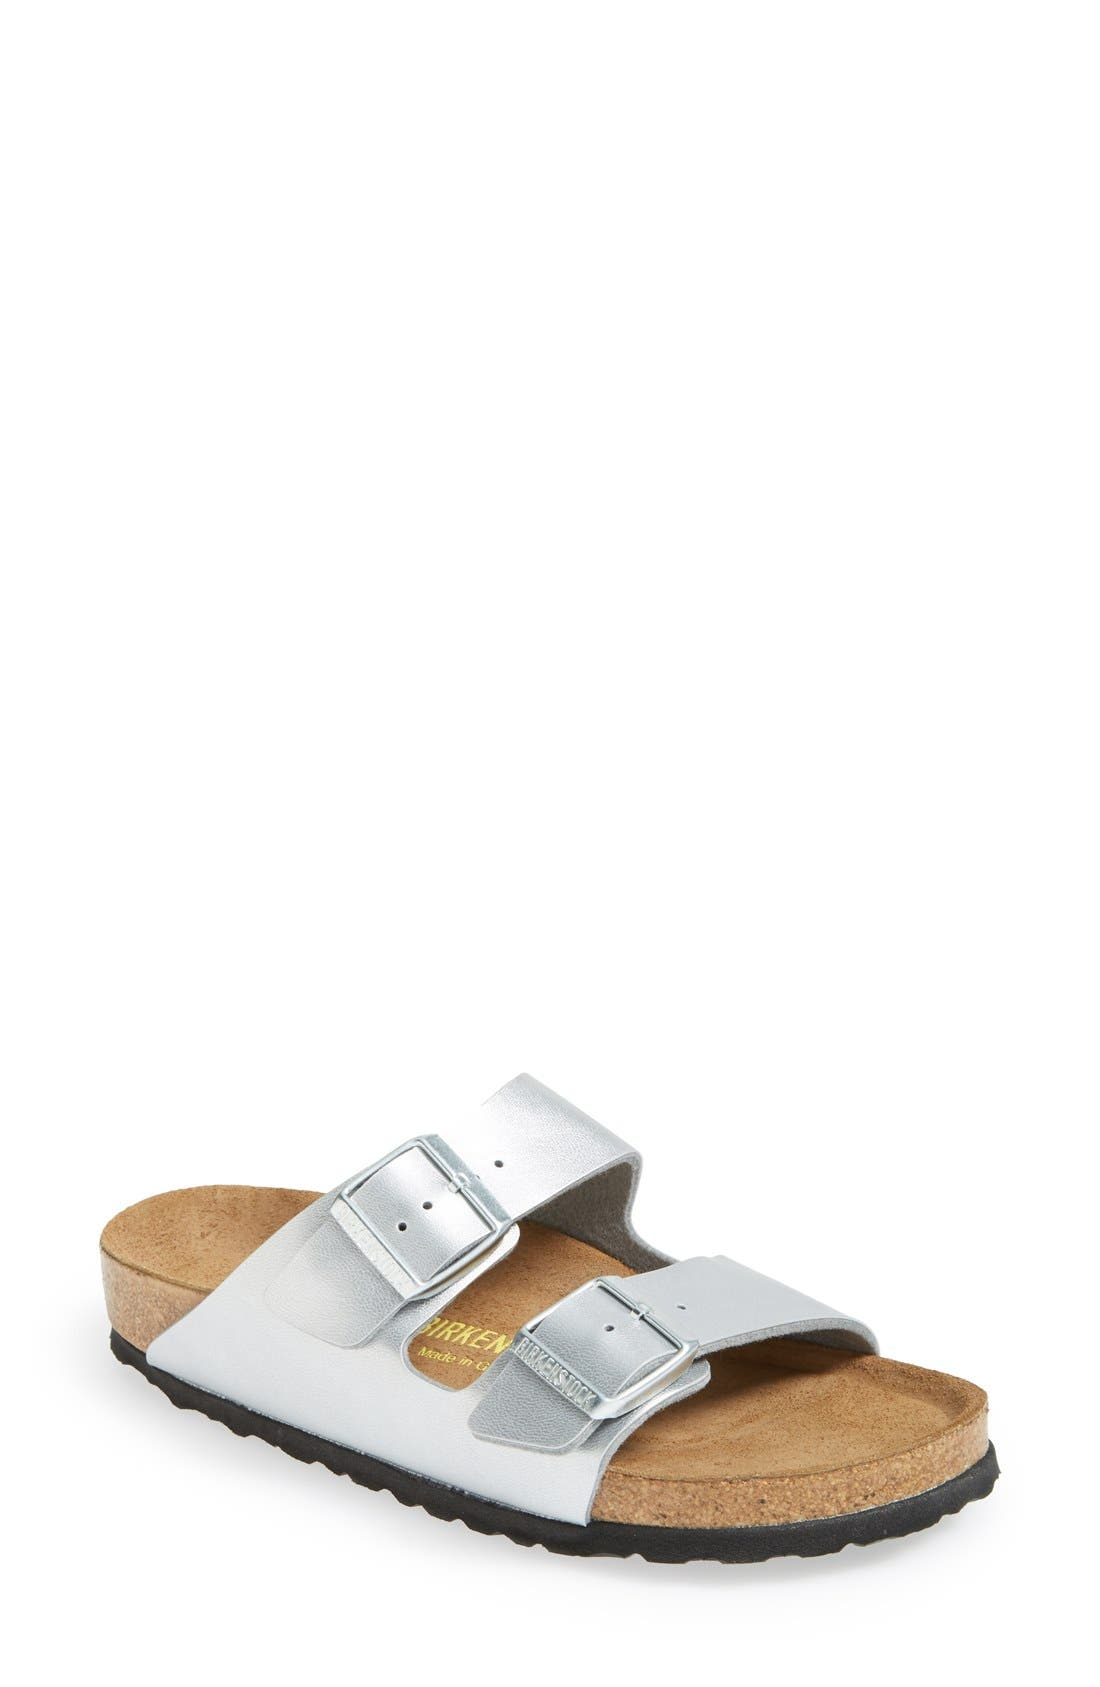 Alternate Image 1 Selected - Birkenstock 'Arizona Birko-Flor' Soft Footbed Sandal (Women)